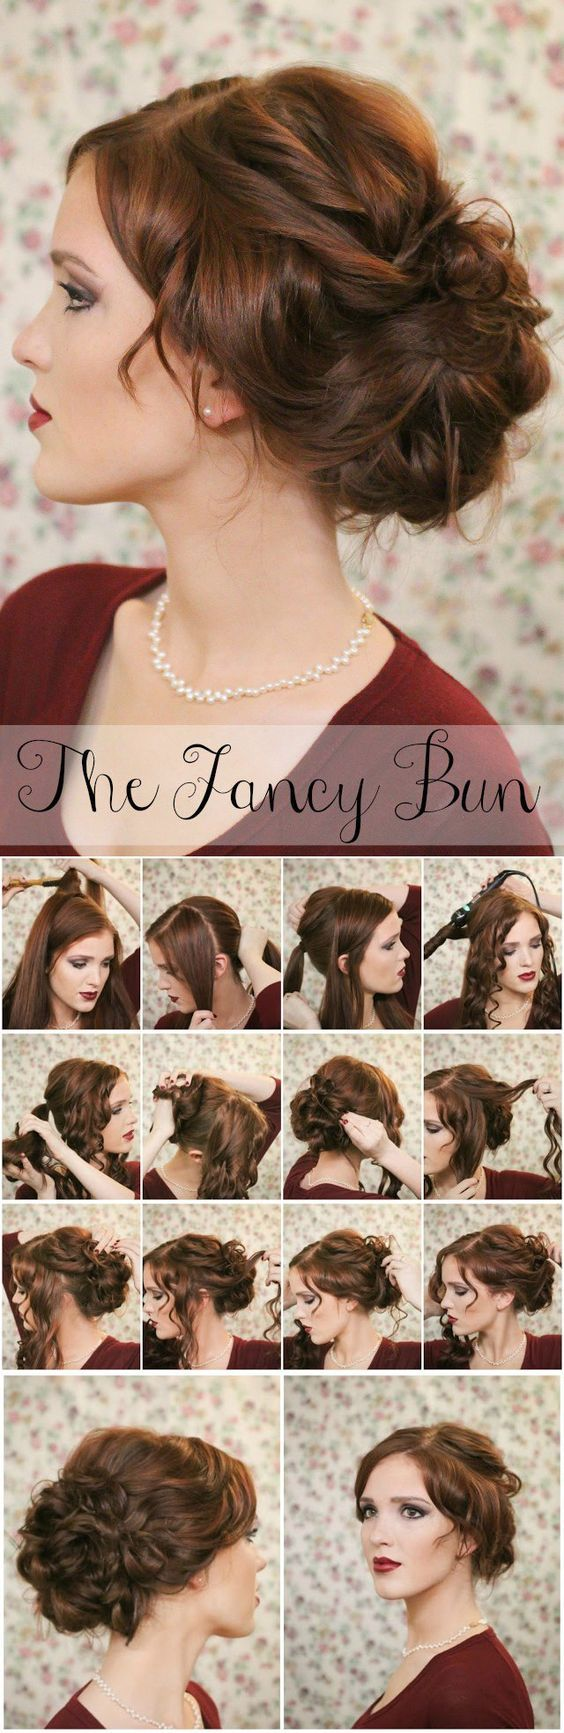 DIY Hairstyle // Super straightforward knotted bun updo and easy bun hairstyle tutorials.